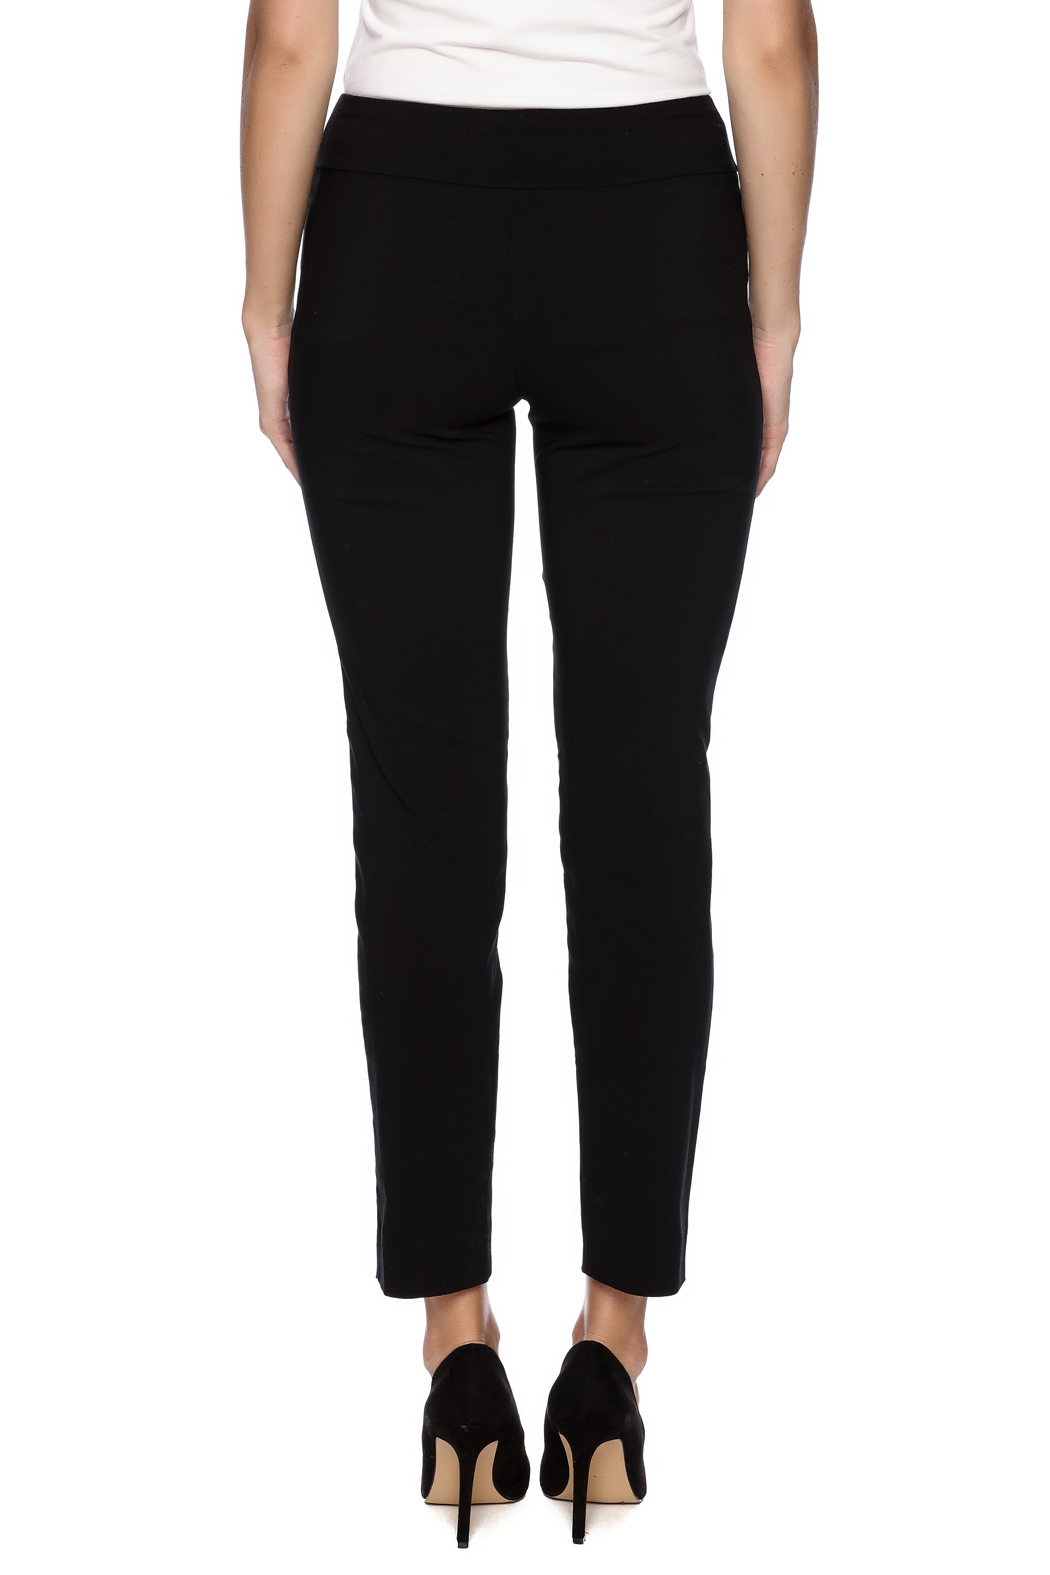 Krazy Larry Pull On Dress Pants - Back Cropped Image